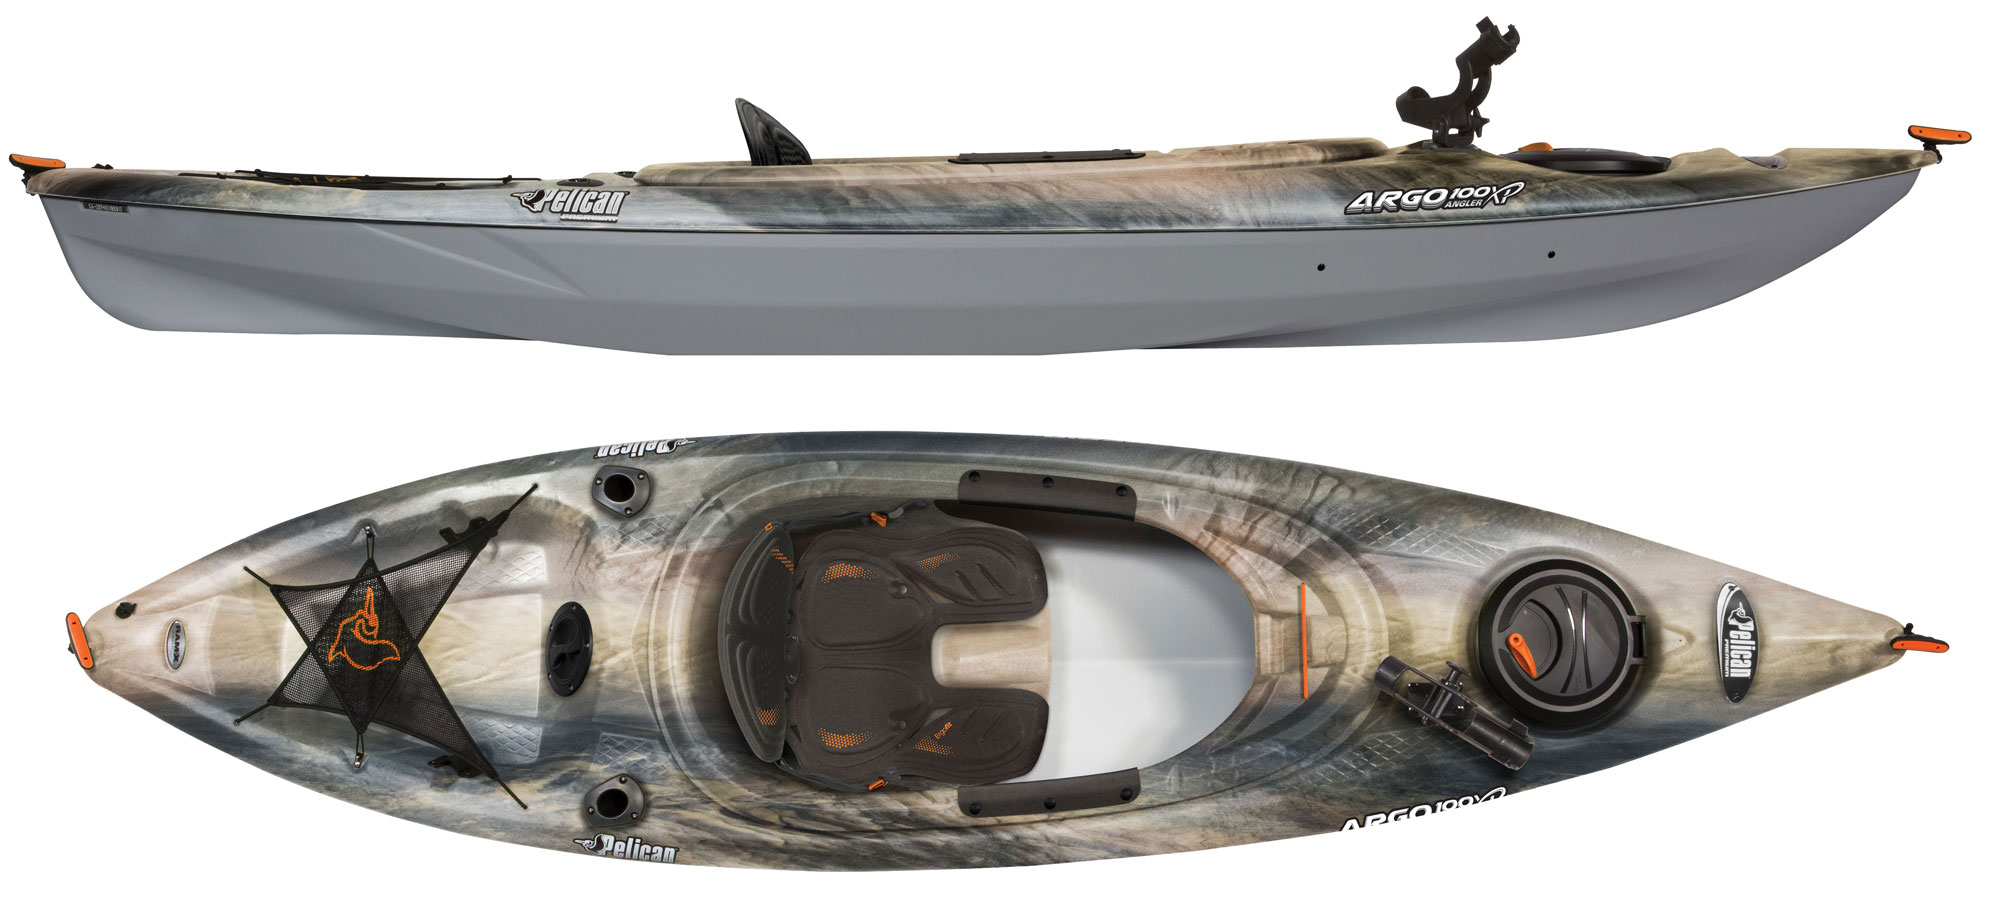 2019 Fishing Kayak Buyer's Guide - On The Water